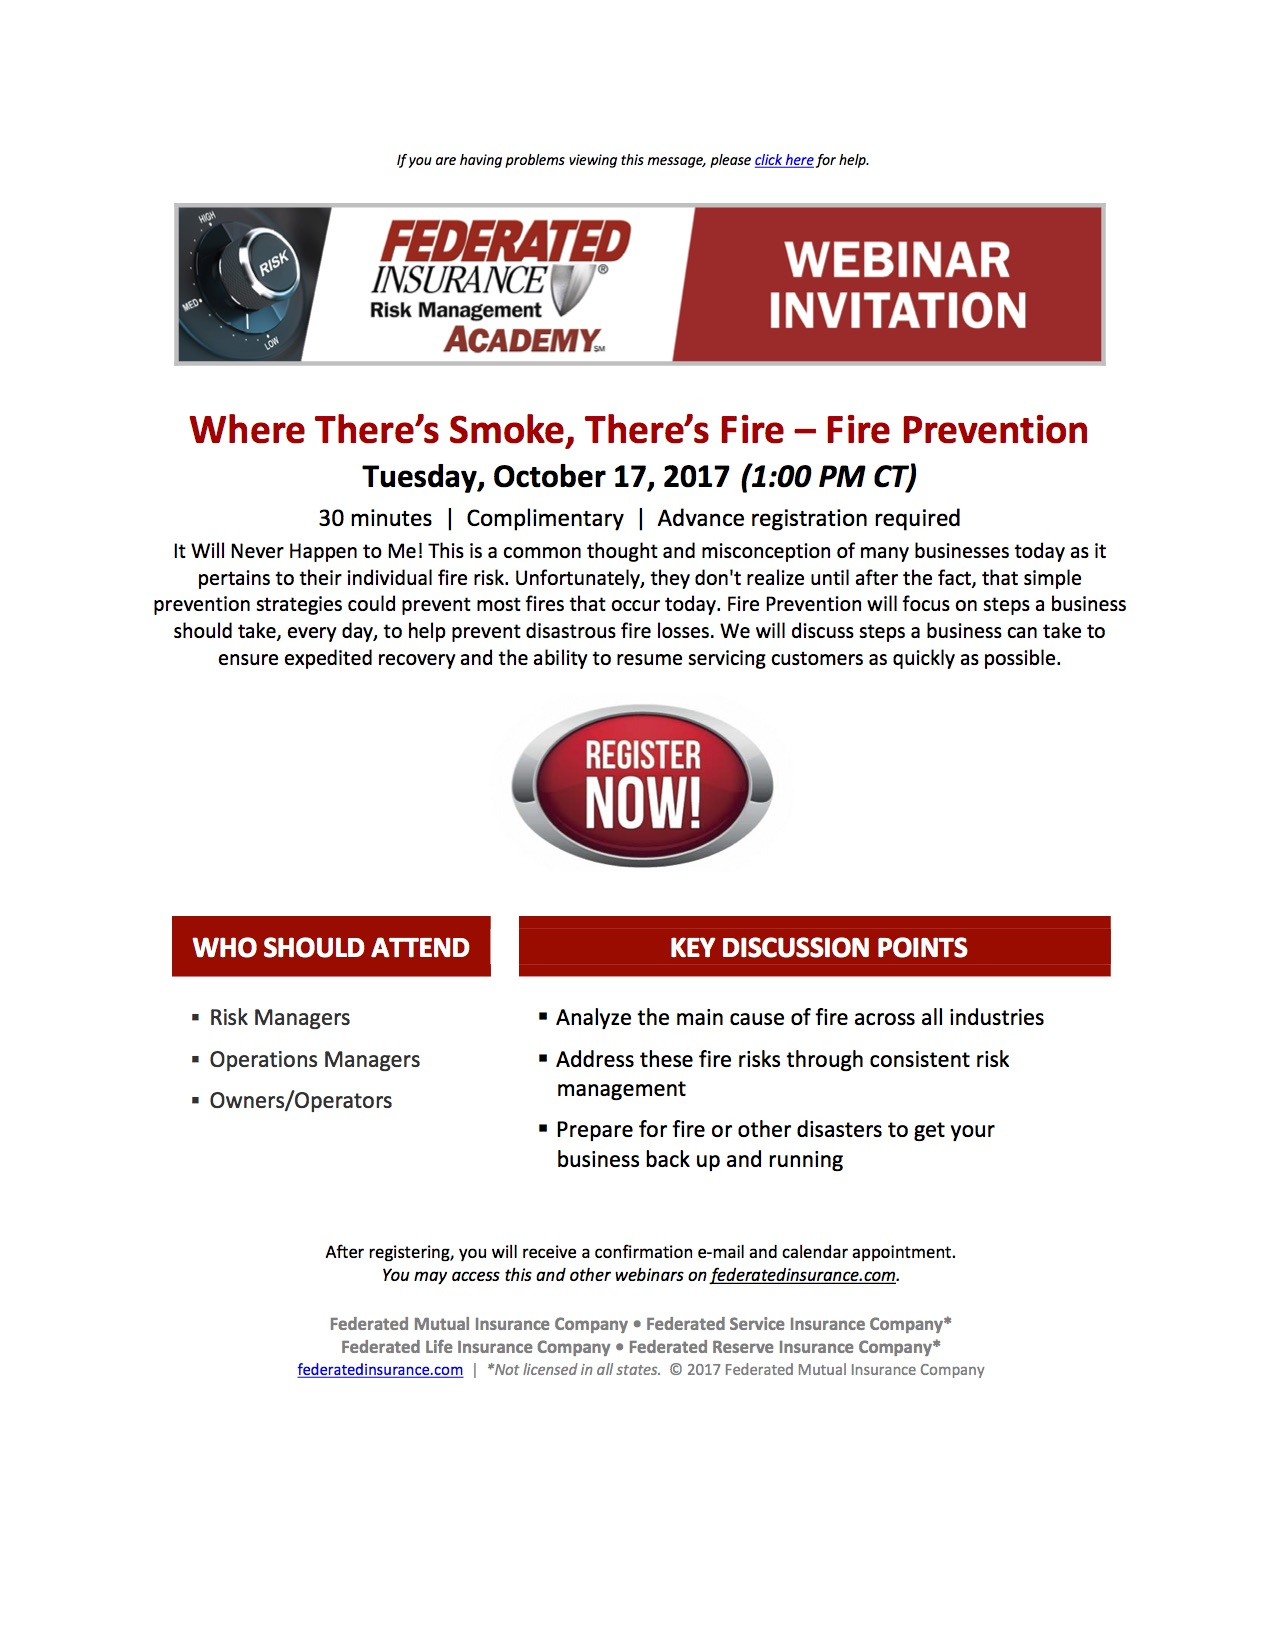 RMA Complimentary Webinar_Where There's Smoke There's Fire_10-17-17